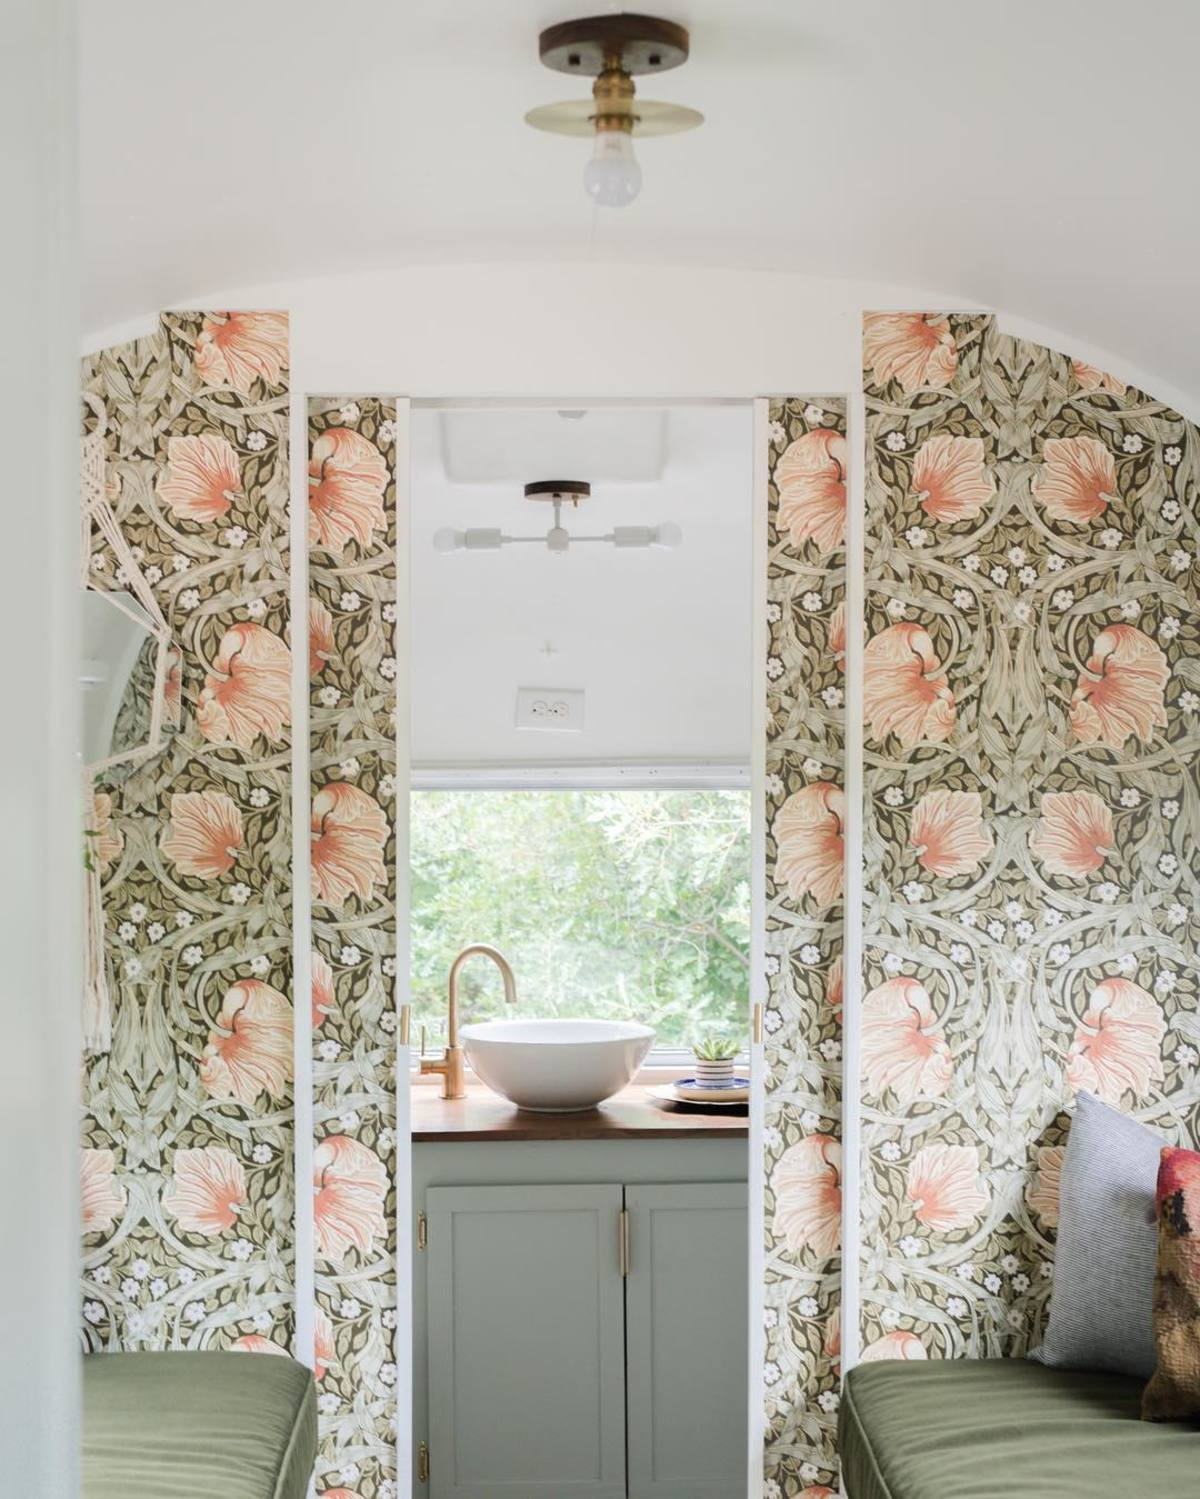 airtsream trailer marjorie 22 - This renovated Airstream trailer is all floral and boho-chic charm